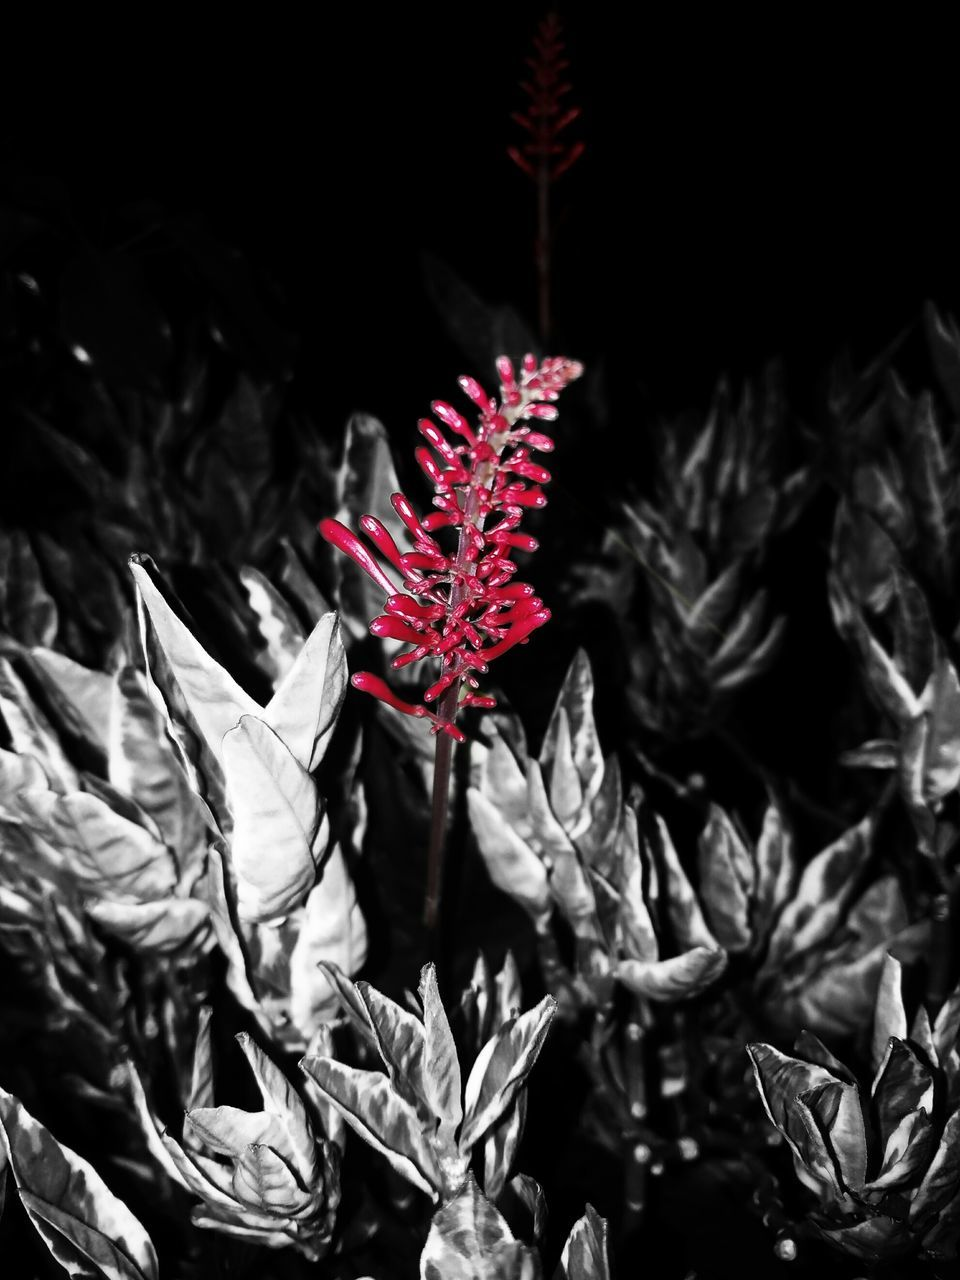 plant, no people, leaf, growth, outdoors, nature, night, close-up, beauty in nature, fragility, freshness